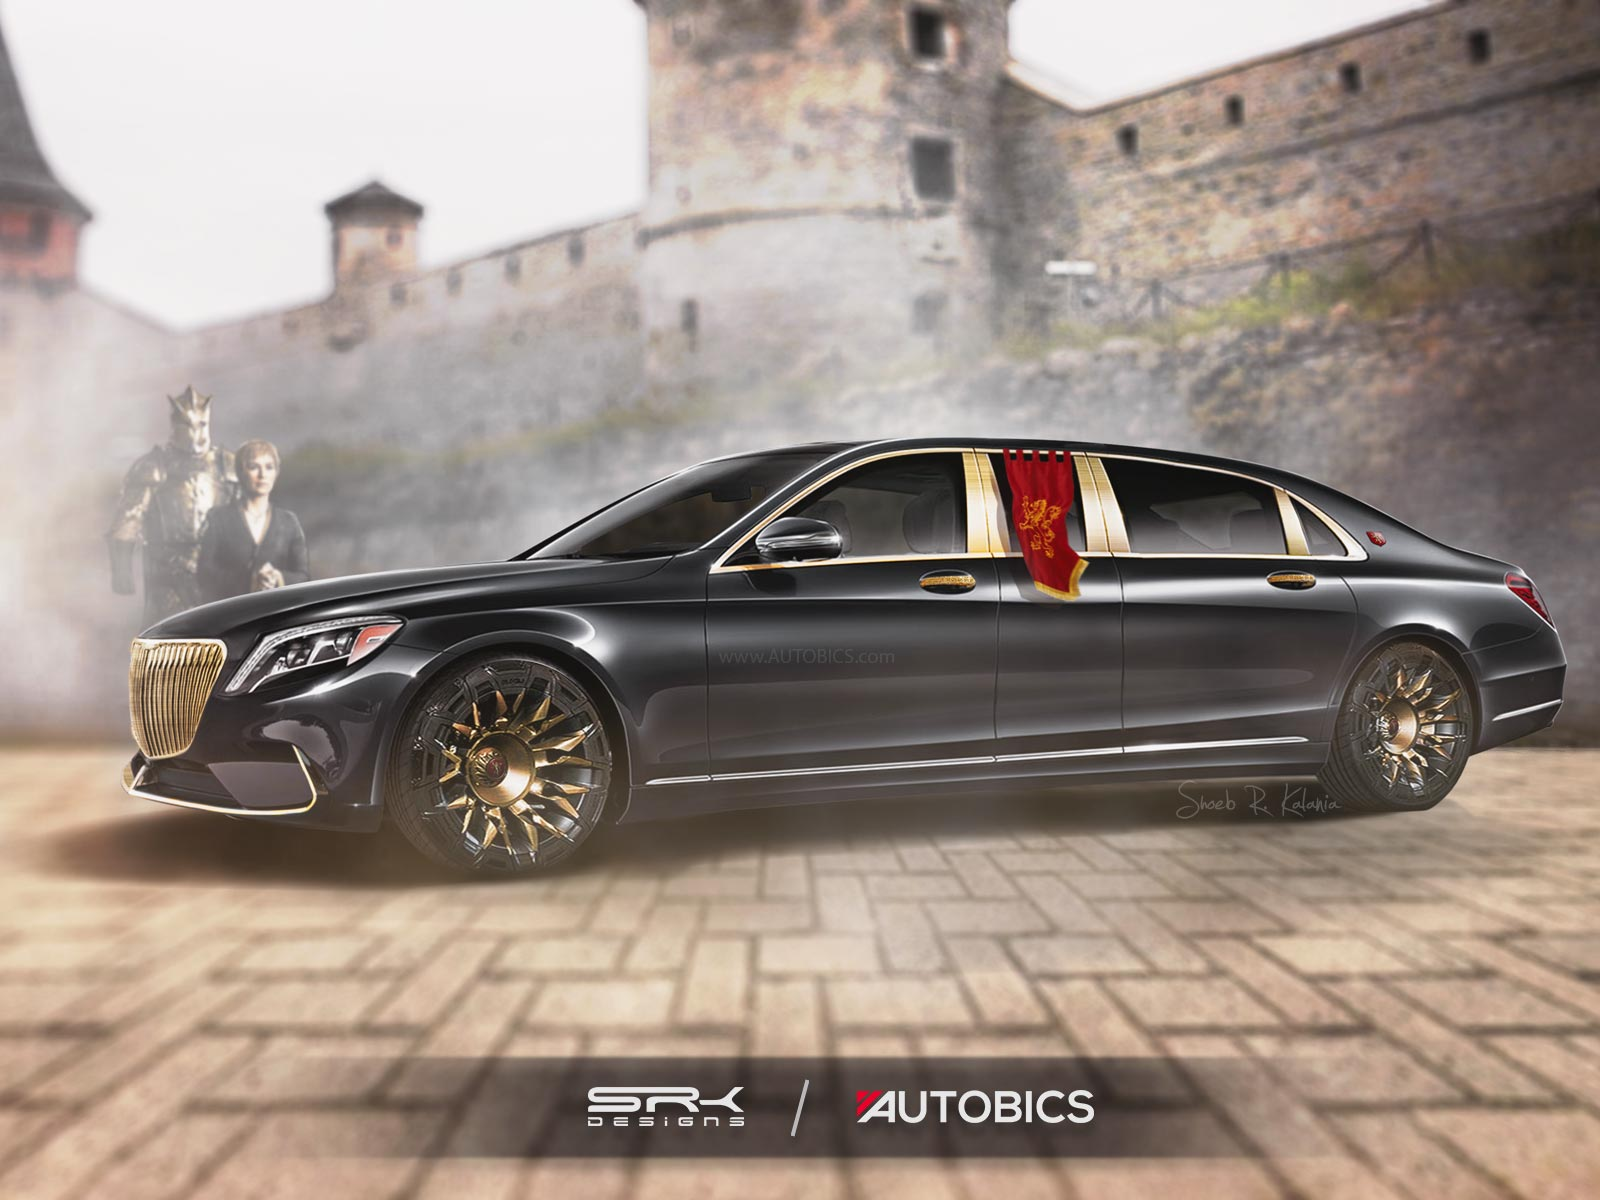 Cersei Lannister – Mercedes-Benz S600 Pullman Maybach Guard - Game of Thrones